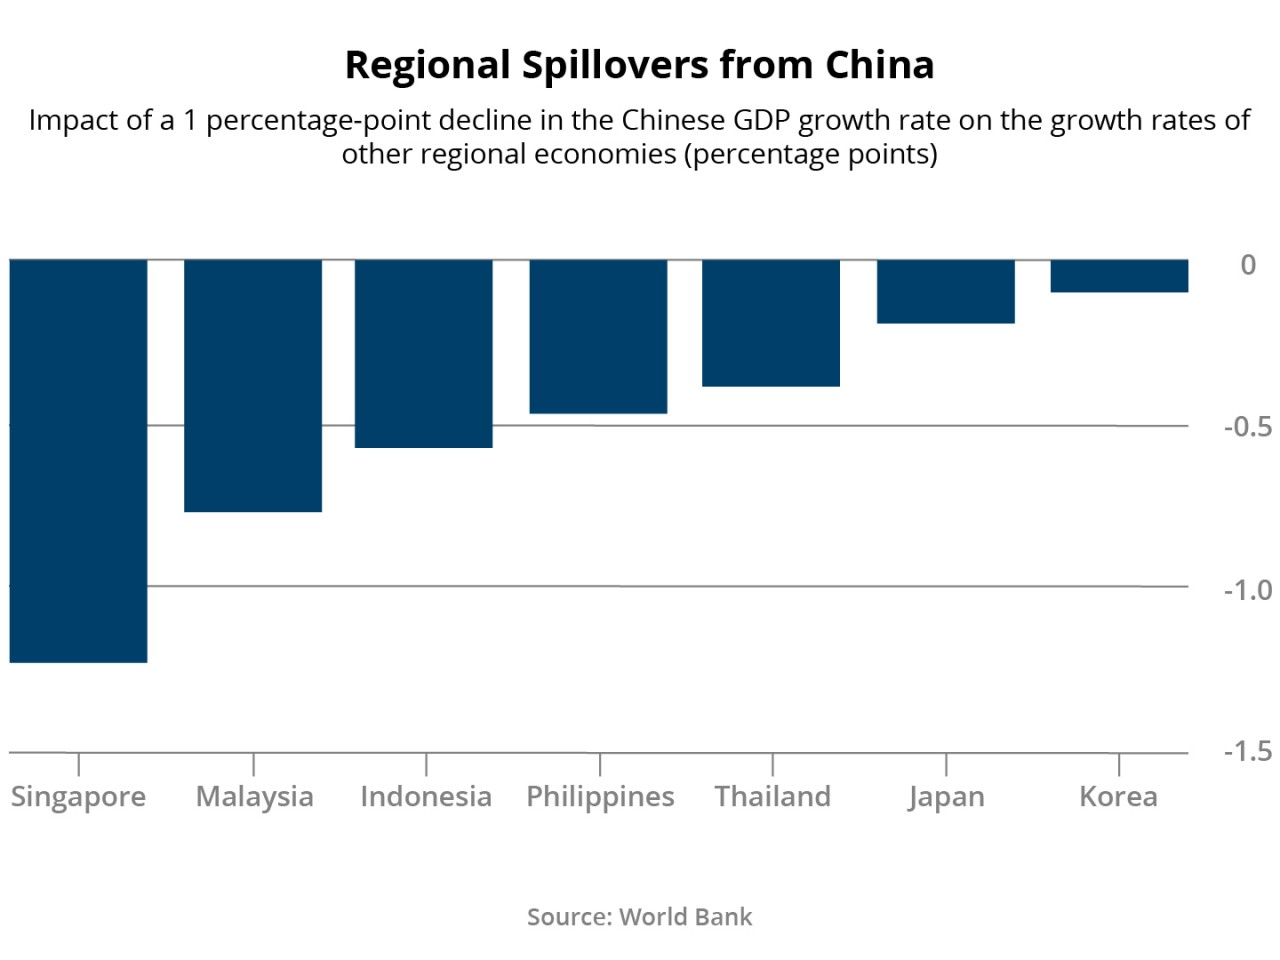 Figure 6: Regional spillovers from China